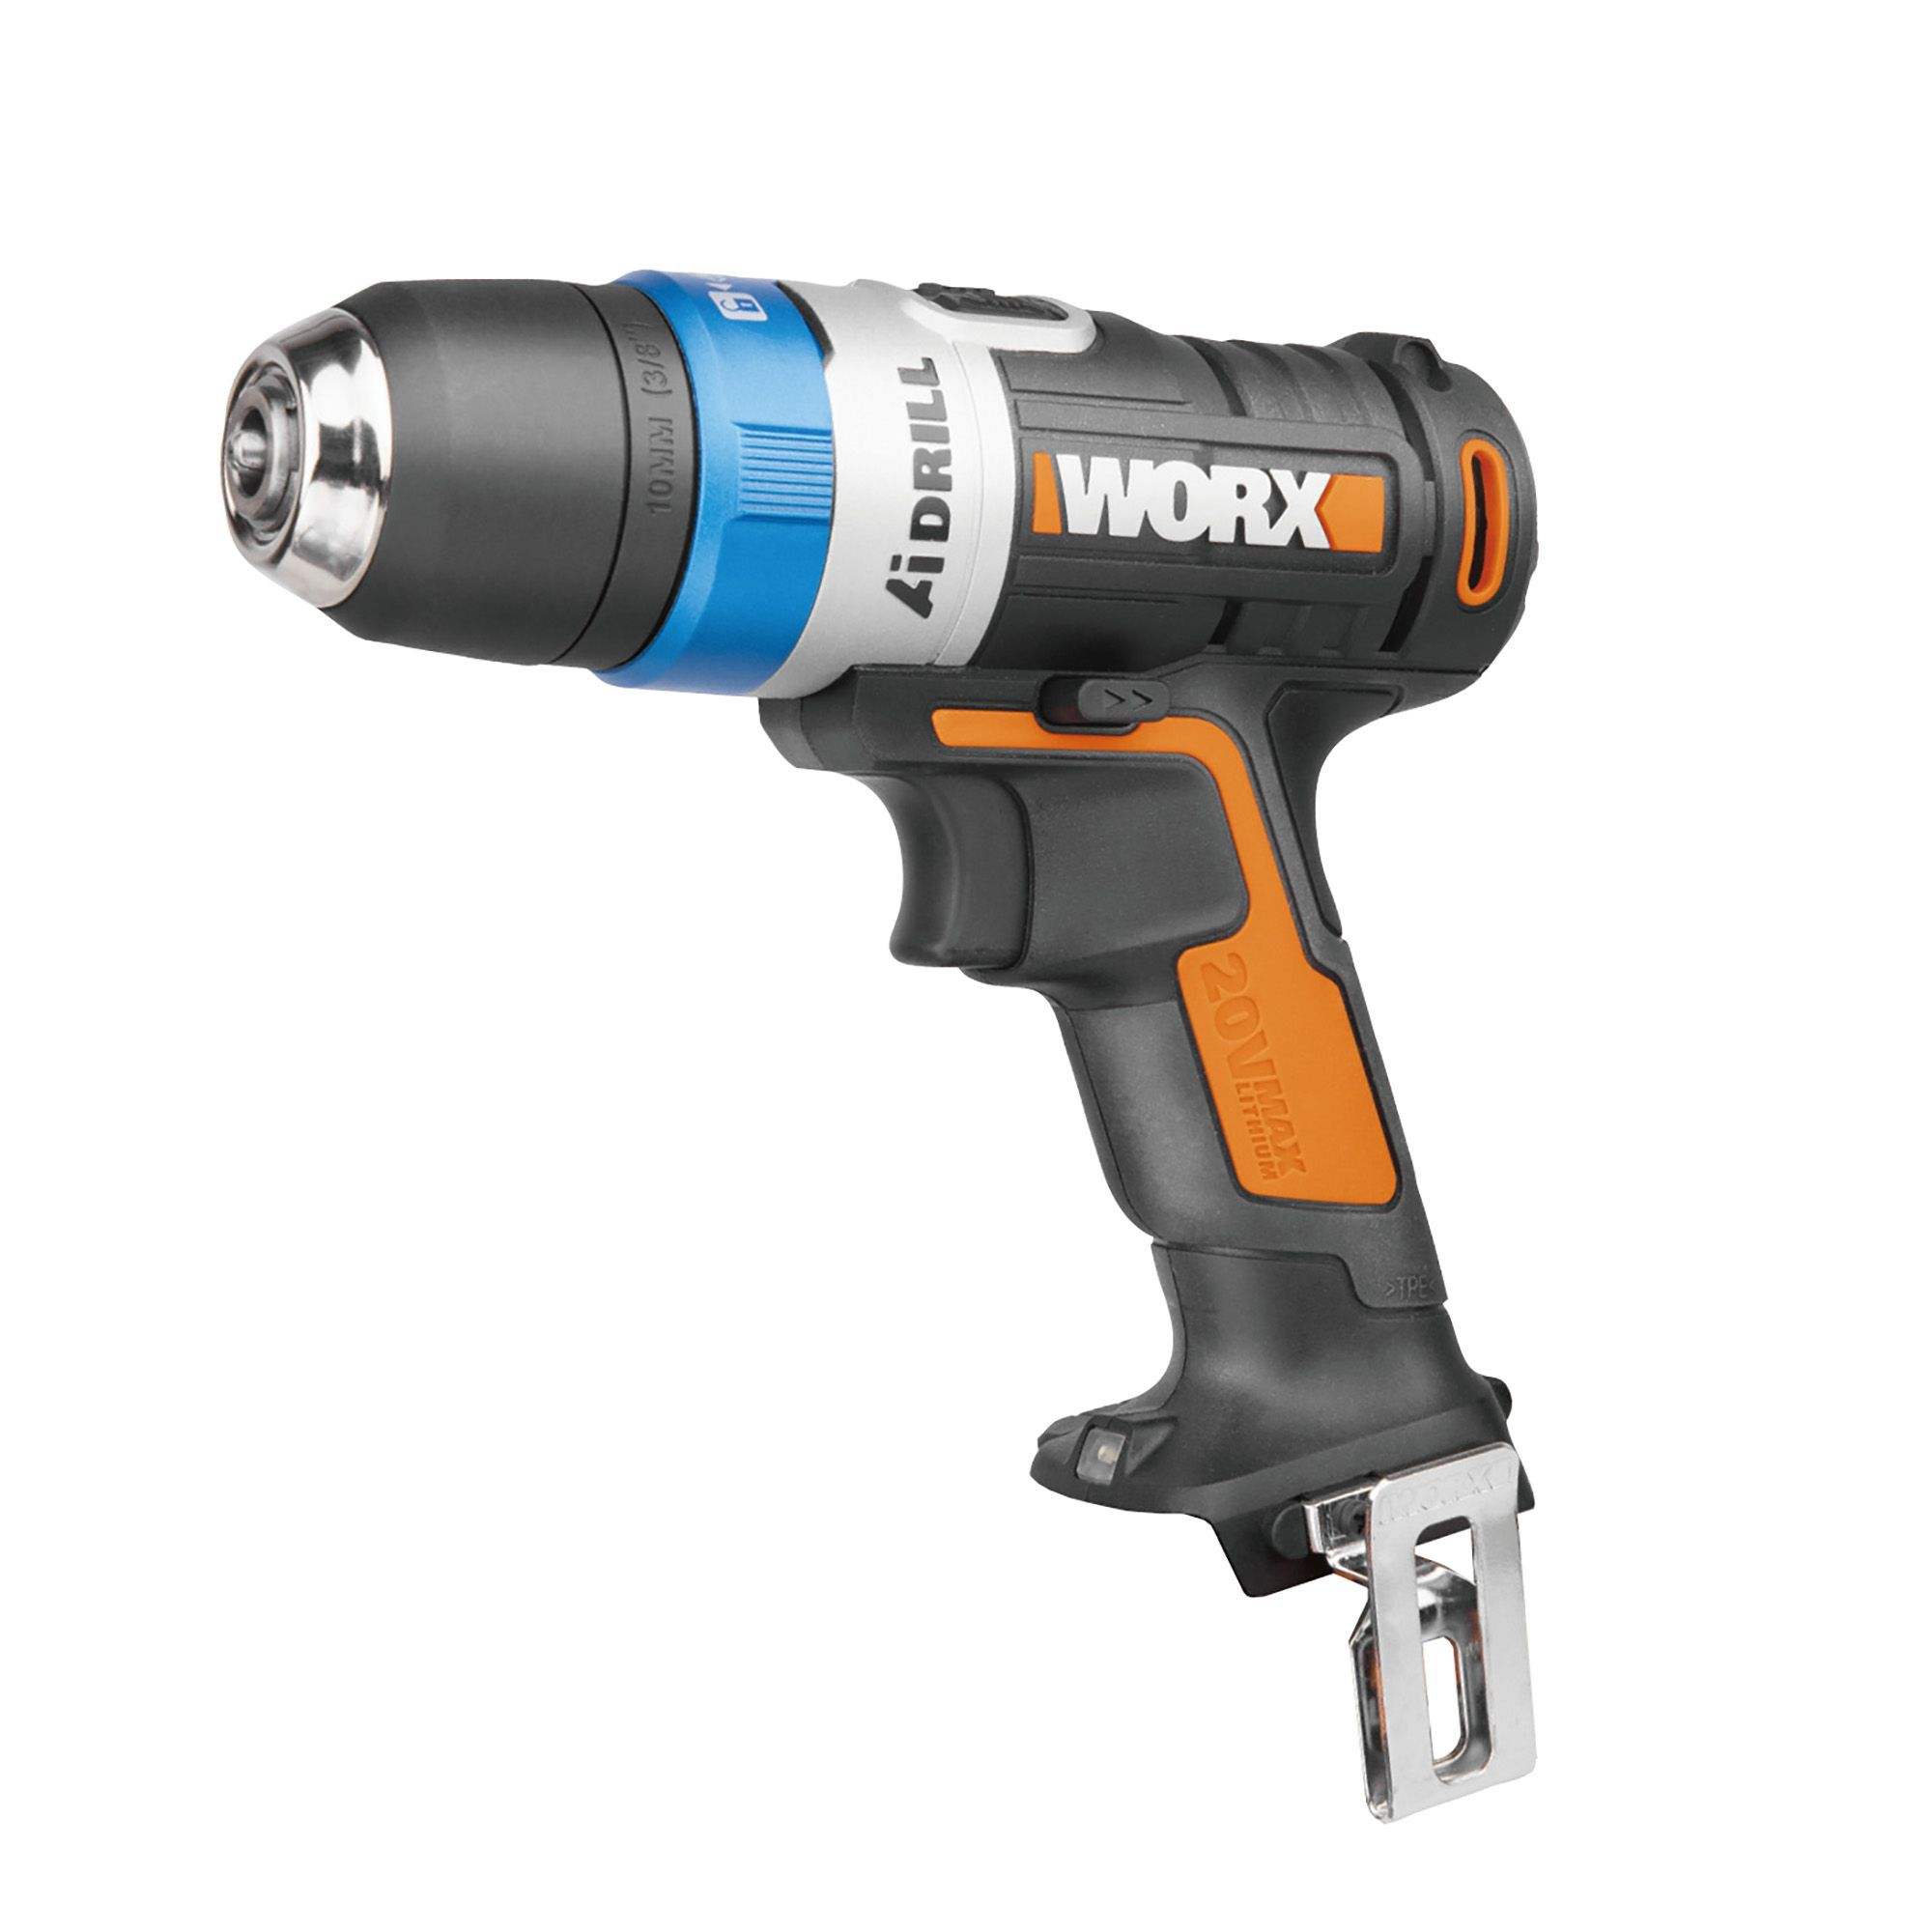 worx powershare cordless 20v drill without batteries wx178 9 departments tradepoint. Black Bedroom Furniture Sets. Home Design Ideas